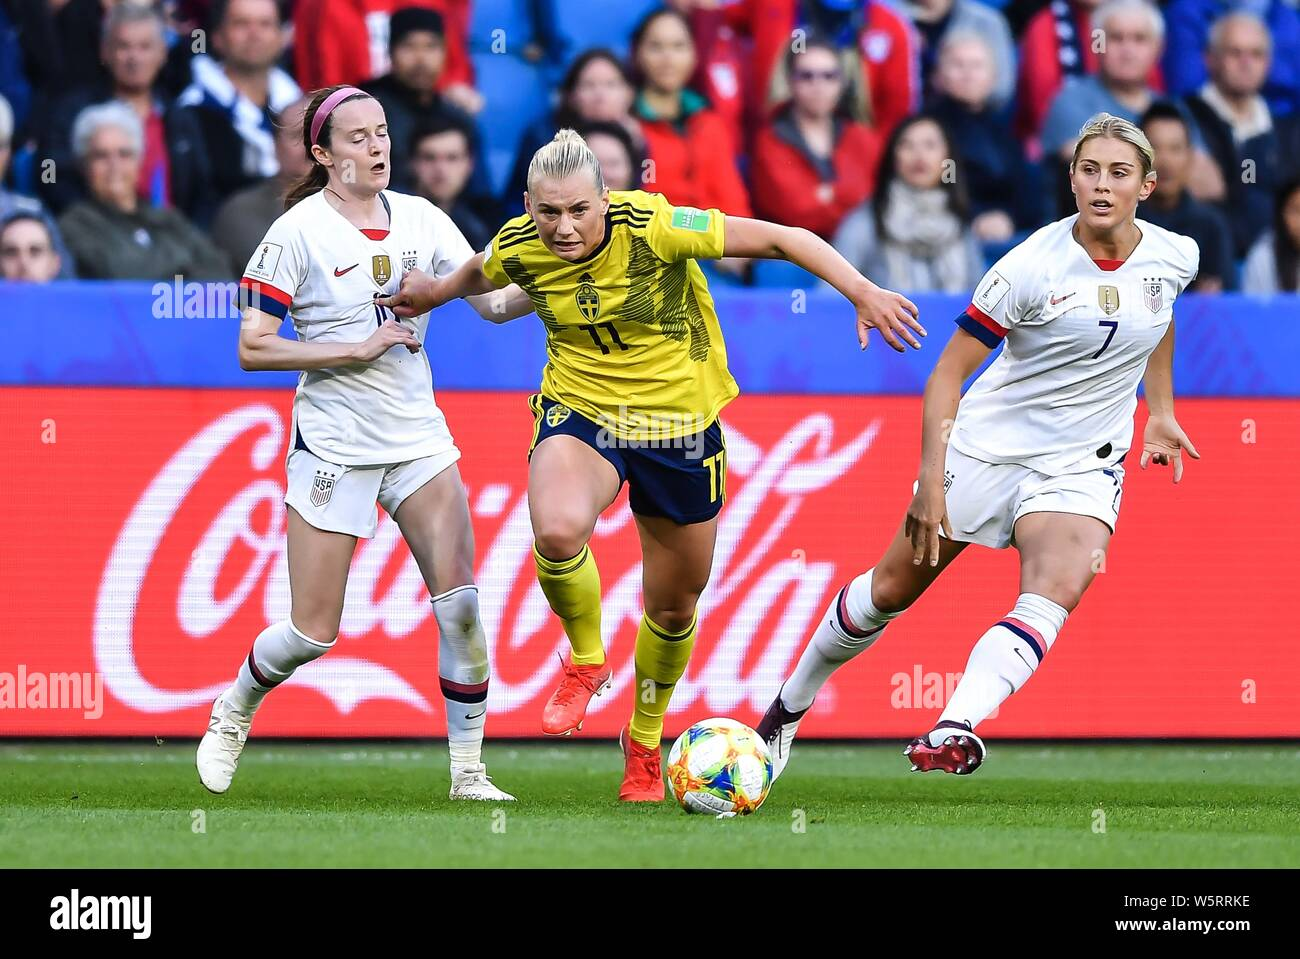 United States Womens Football Team Stock Photos & United